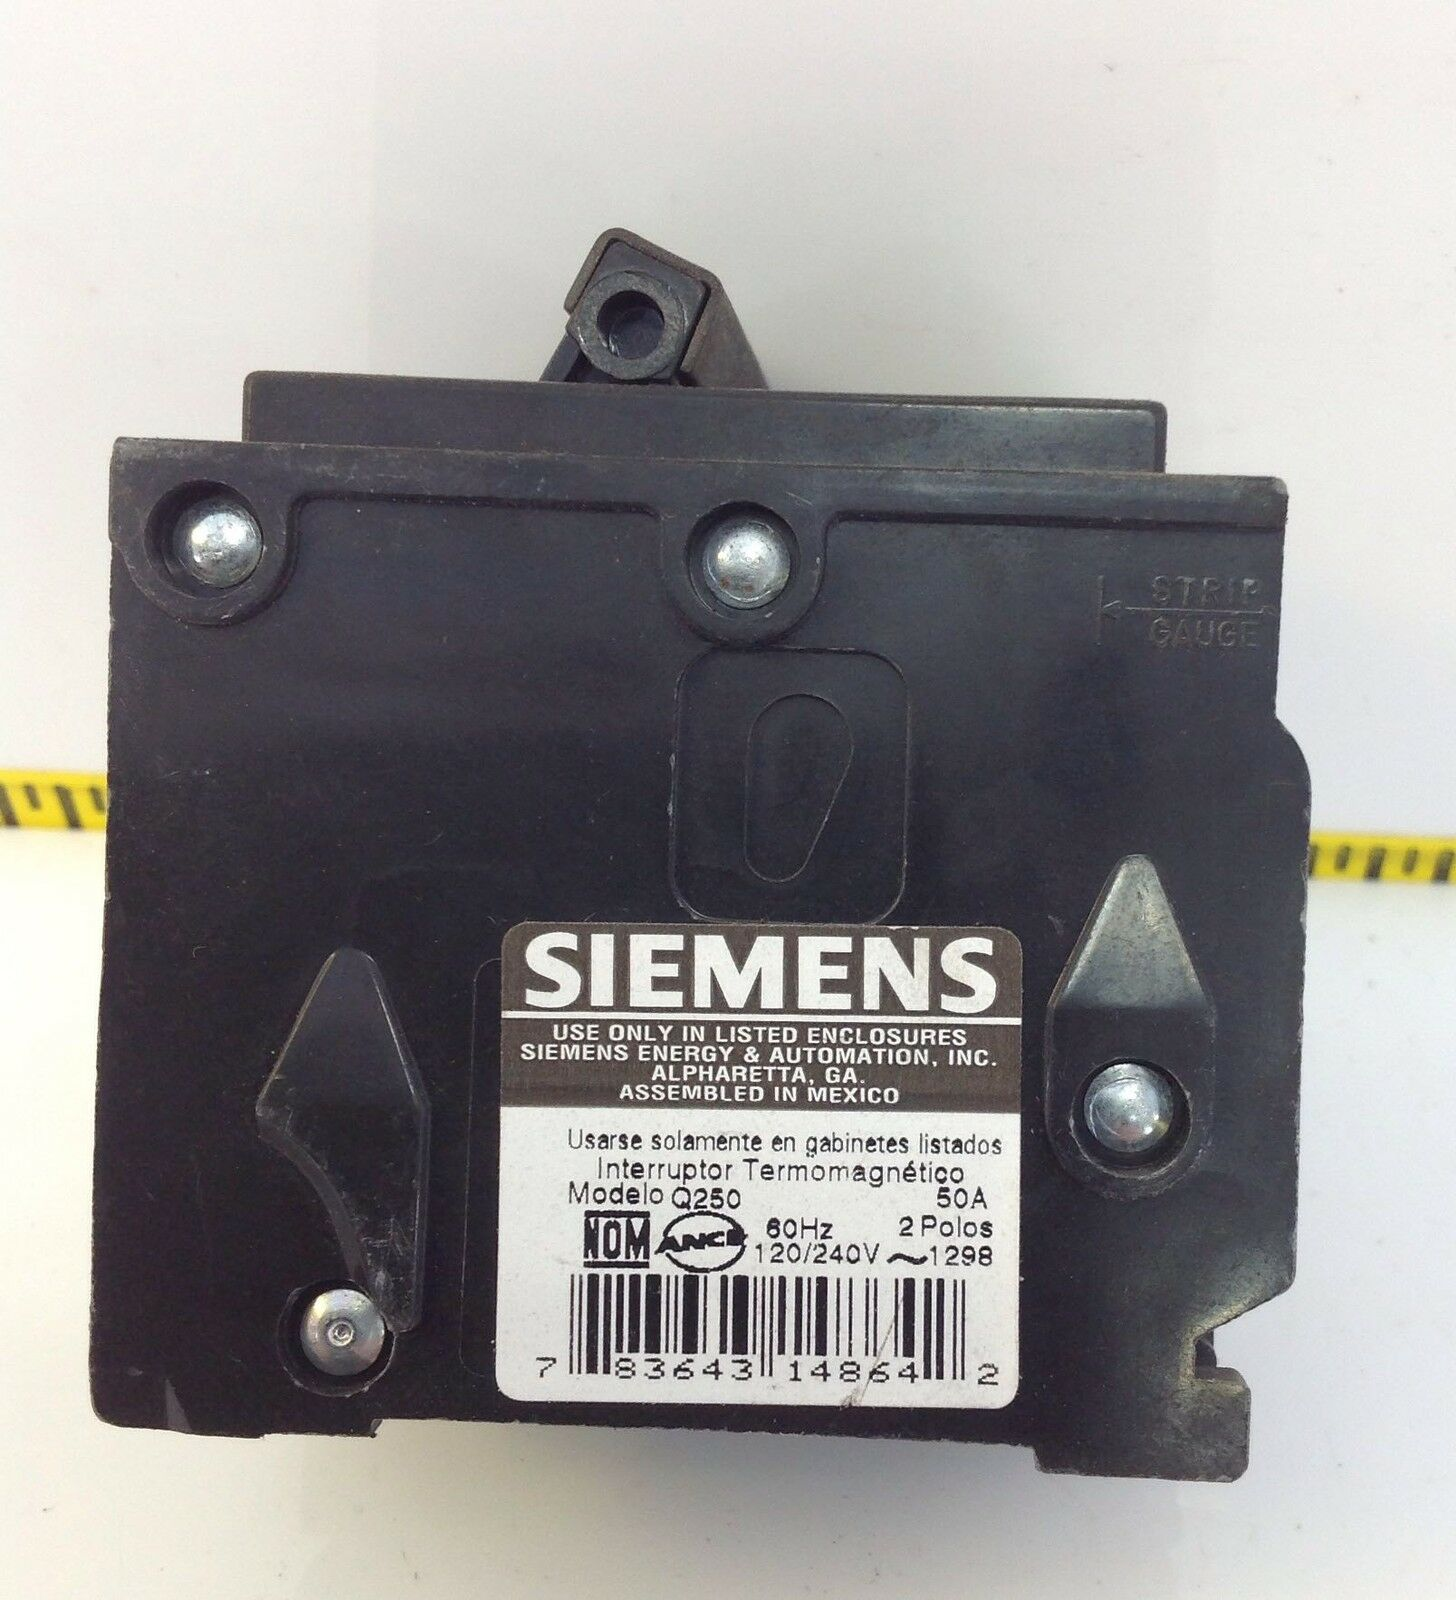 Siemens Q250 2 Pole Circuit Breaker 50 Amps Ebay Used Breakers Ite E43b060 60 Amp 3